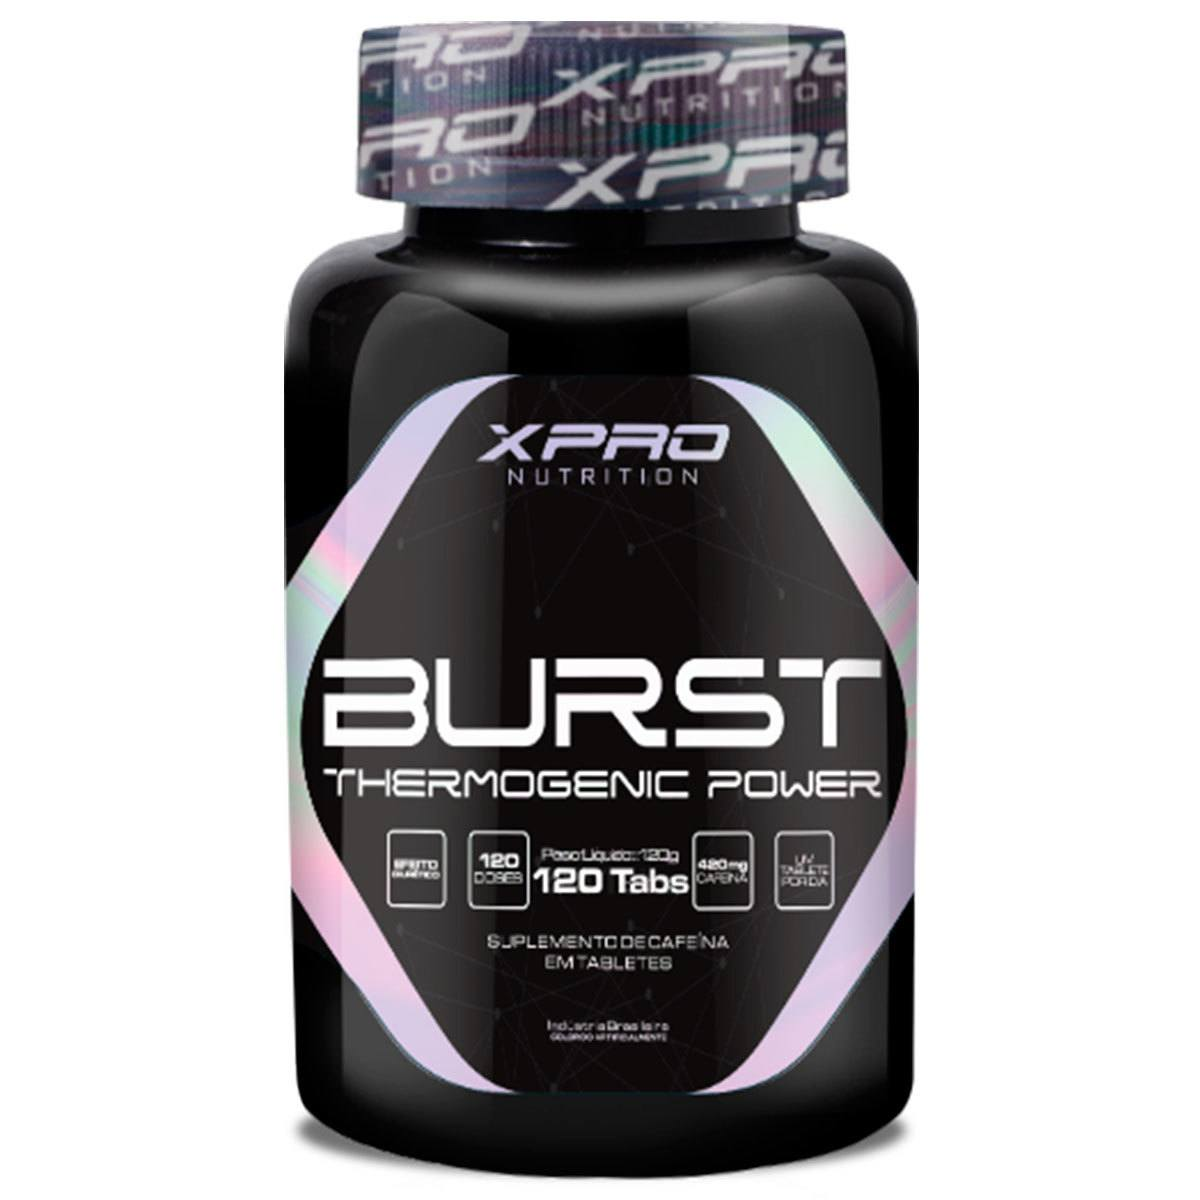 Termogênico Burst Thermogenic Power 120 Tabs Xpro Nutrition